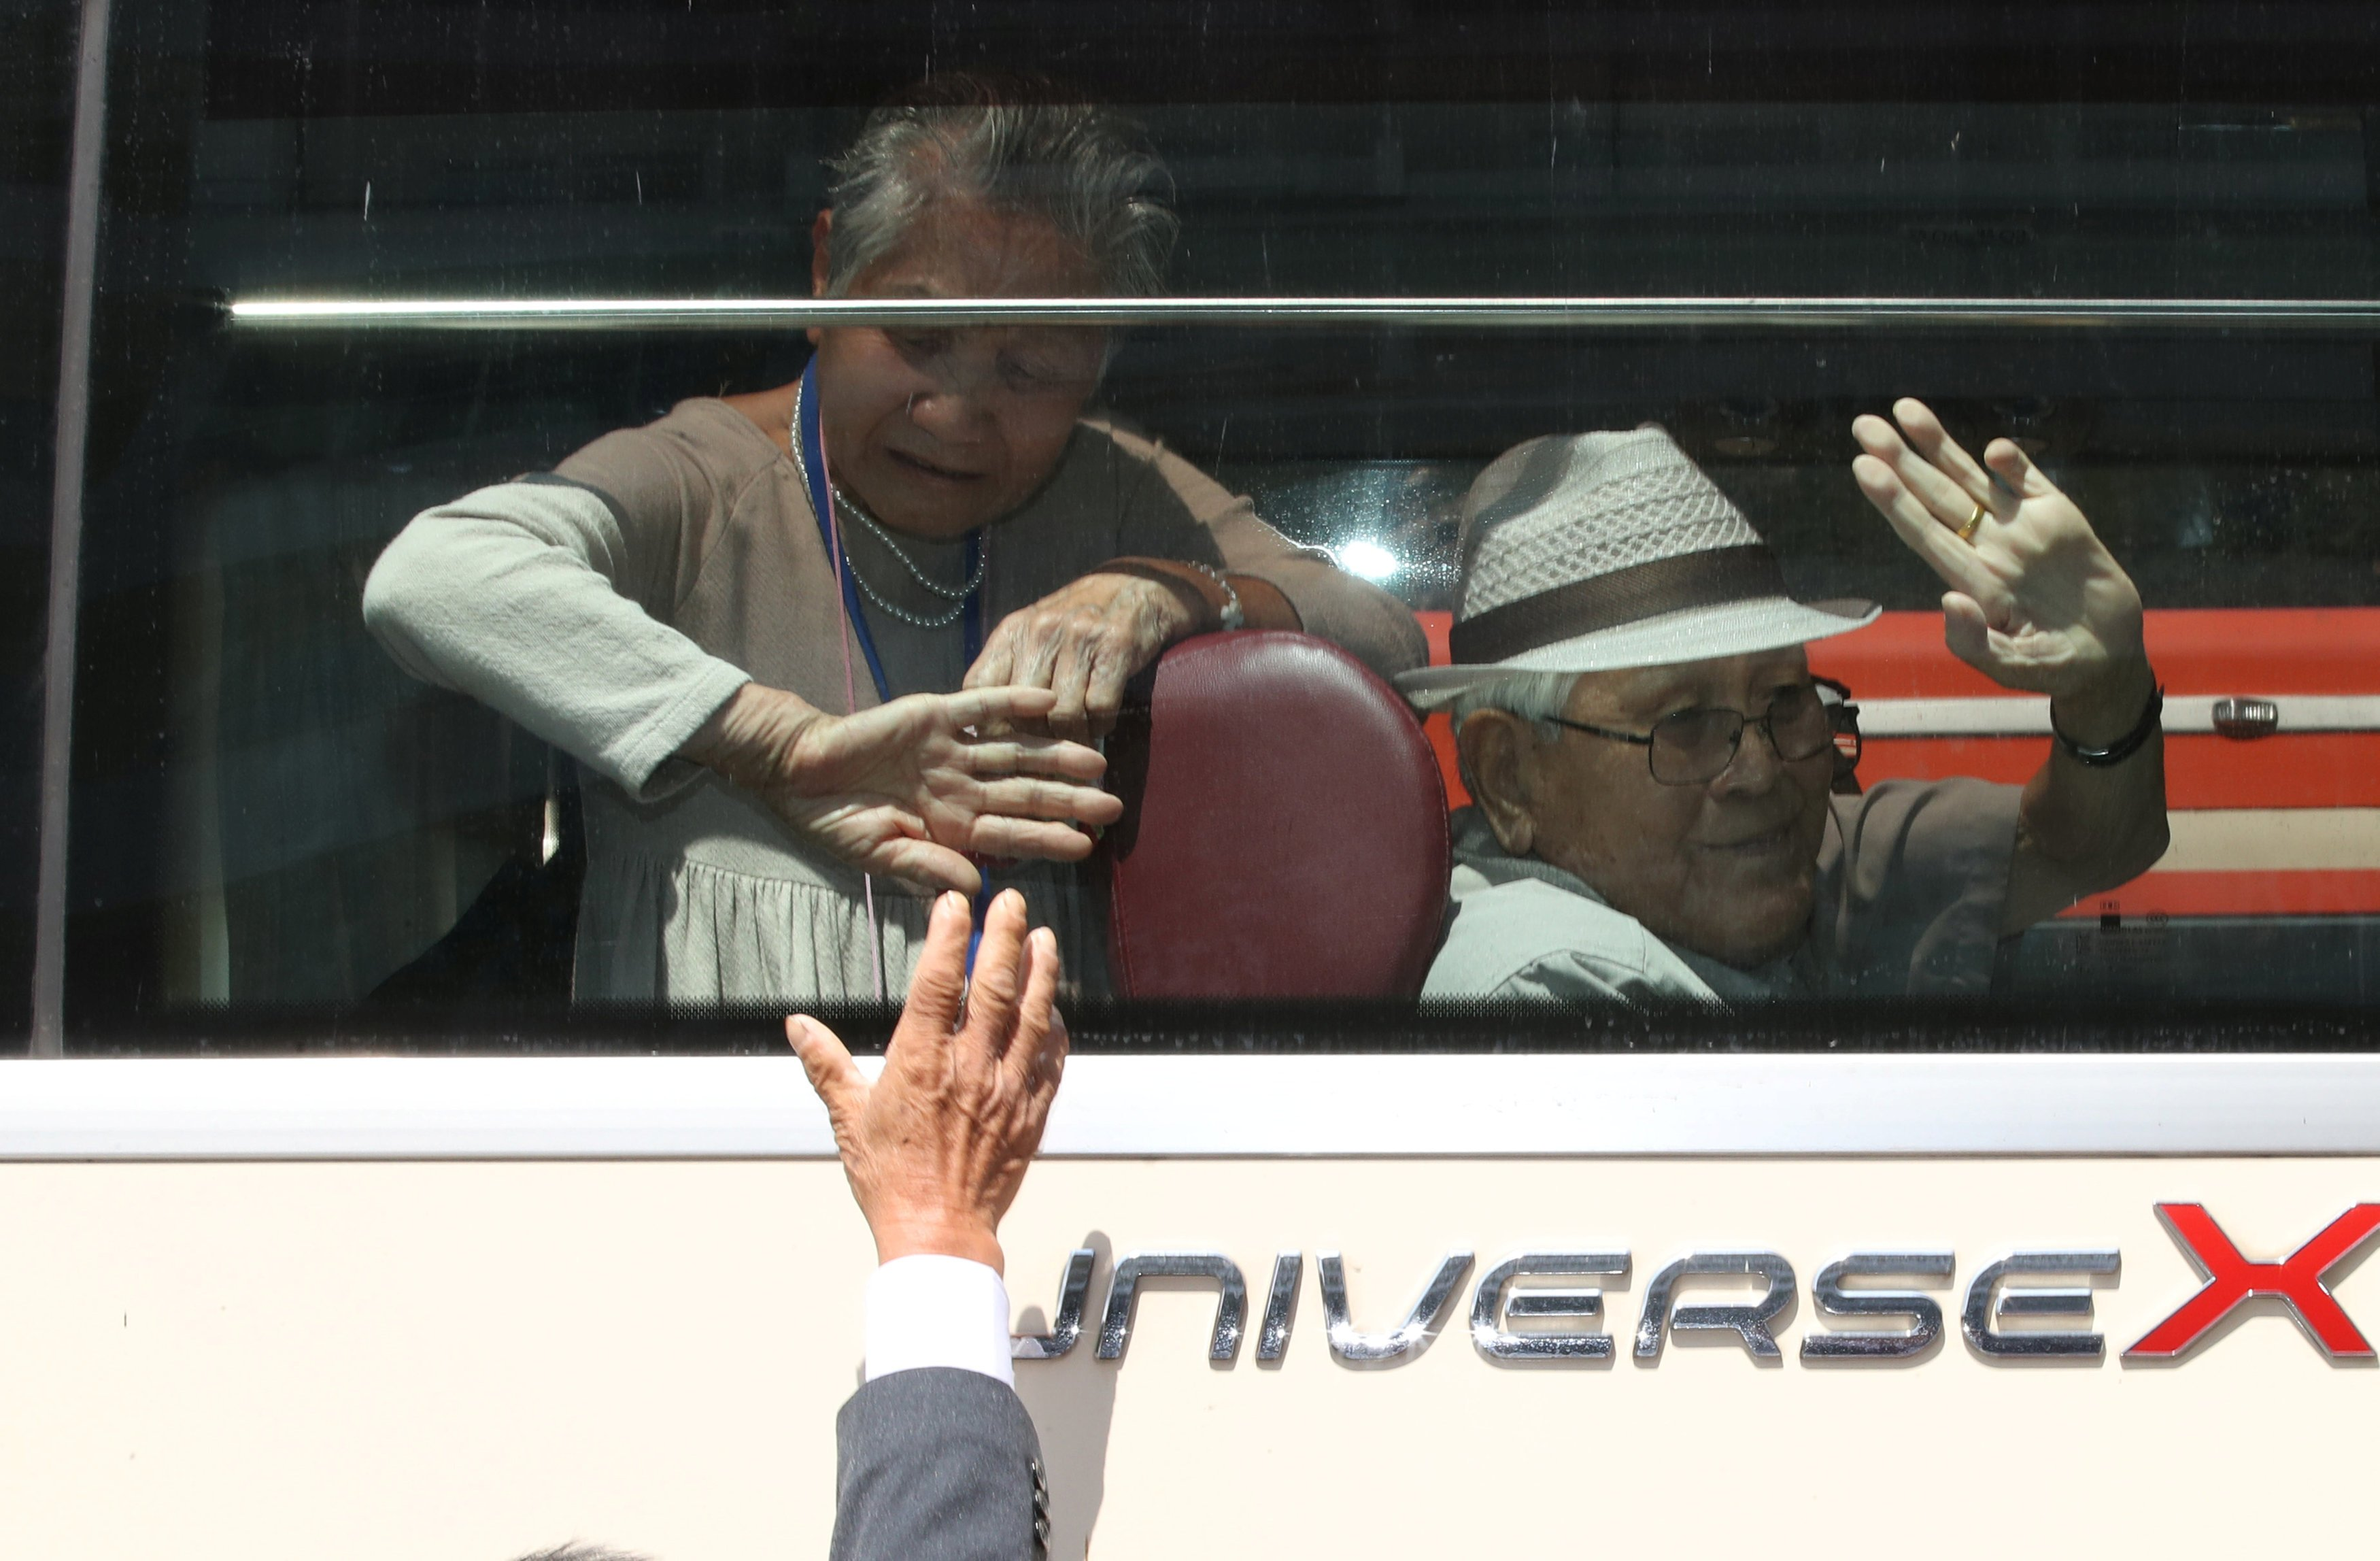 A North Korean man bids farewell to his South Korean family members as they leave after a reunion at Mount Kumgang resort